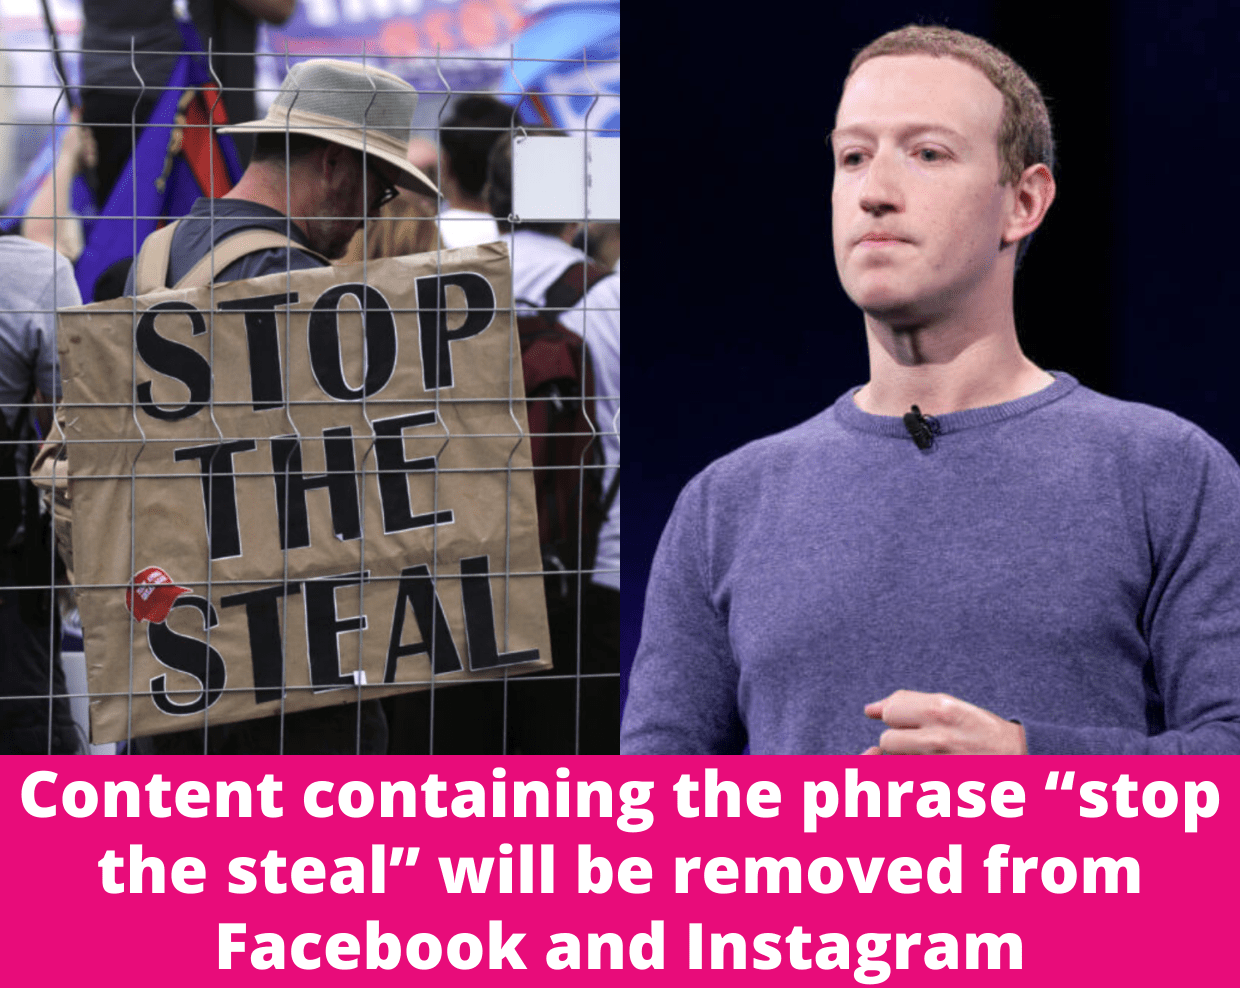 Facebook Will Remove All Content With Phrase 'Stop The Steal' Ahead Of Inauguration Day